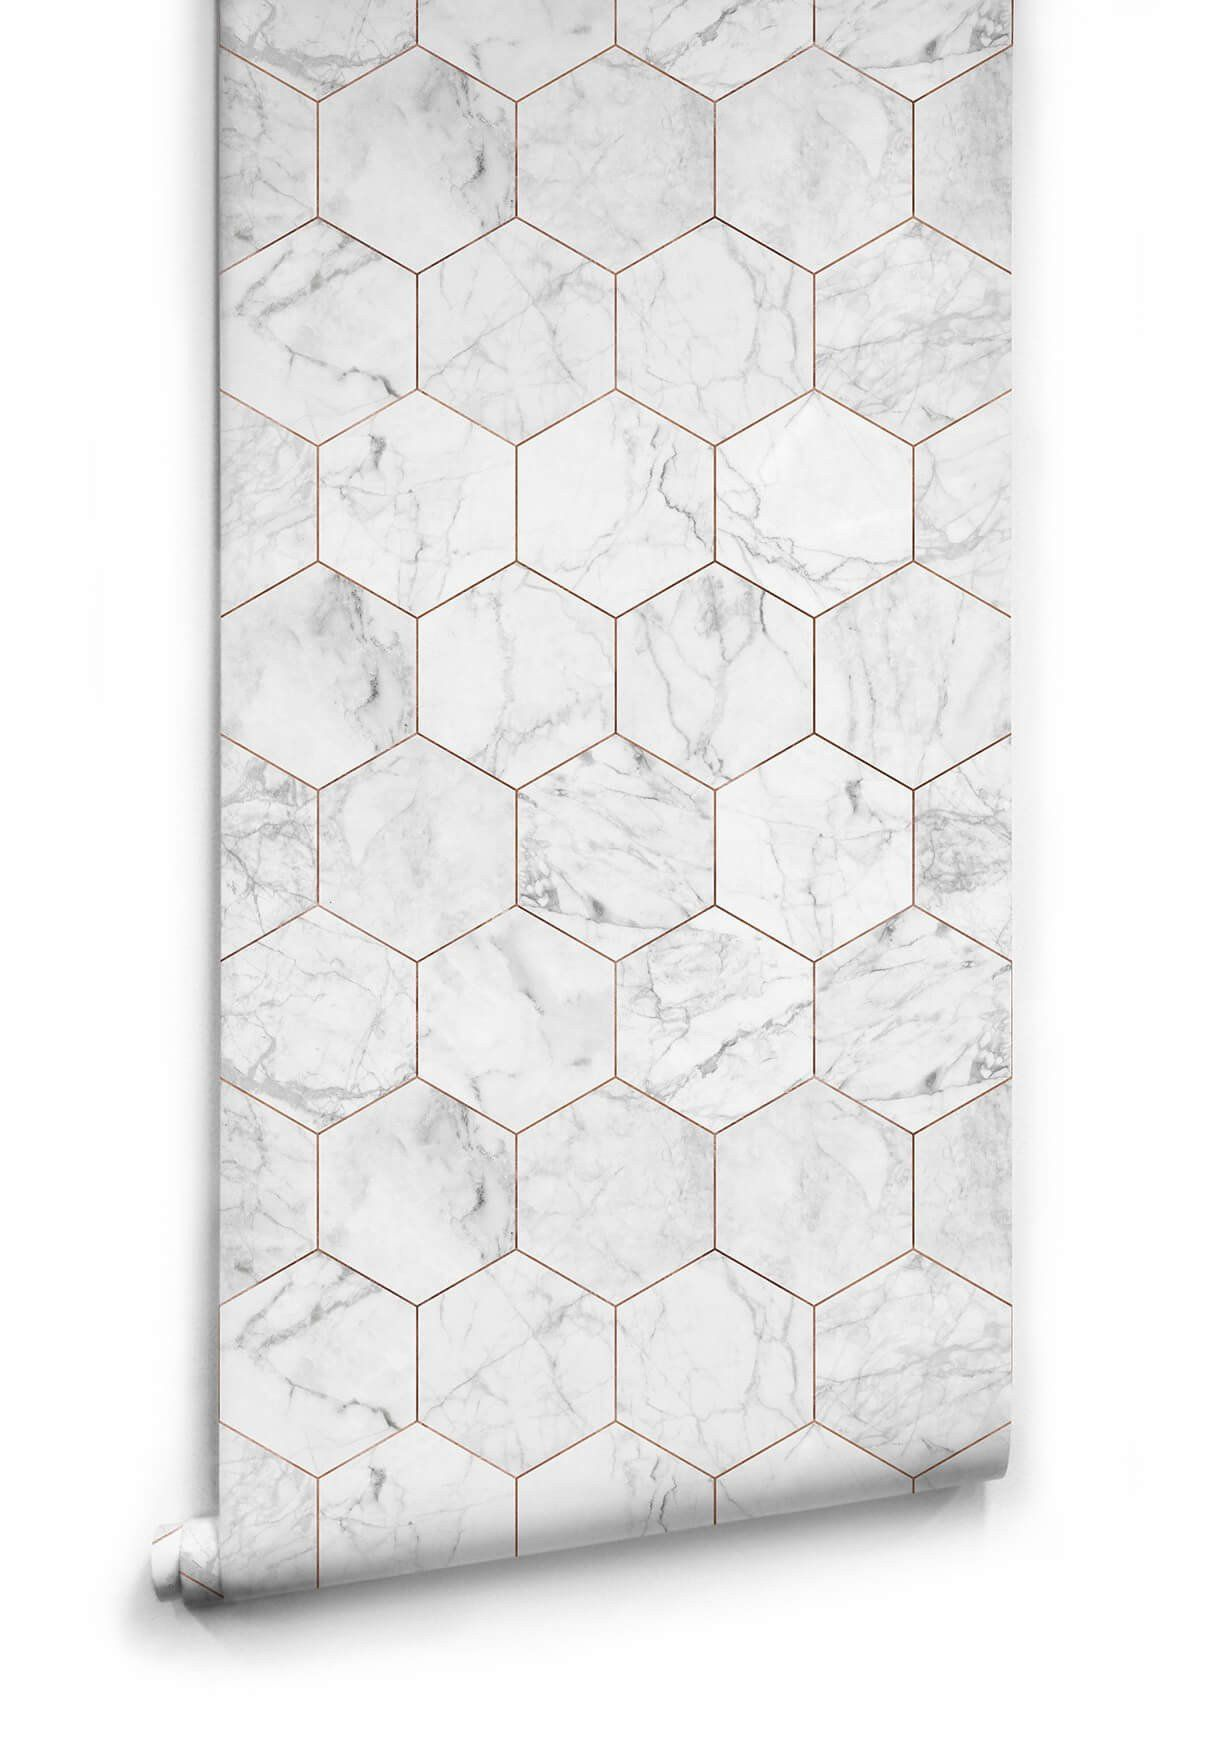 Marble And Copper Tiles Wallpaper From The Kemra Collection Design By Copper Tiles Tile Wallpaper Honeycomb Wallpaper